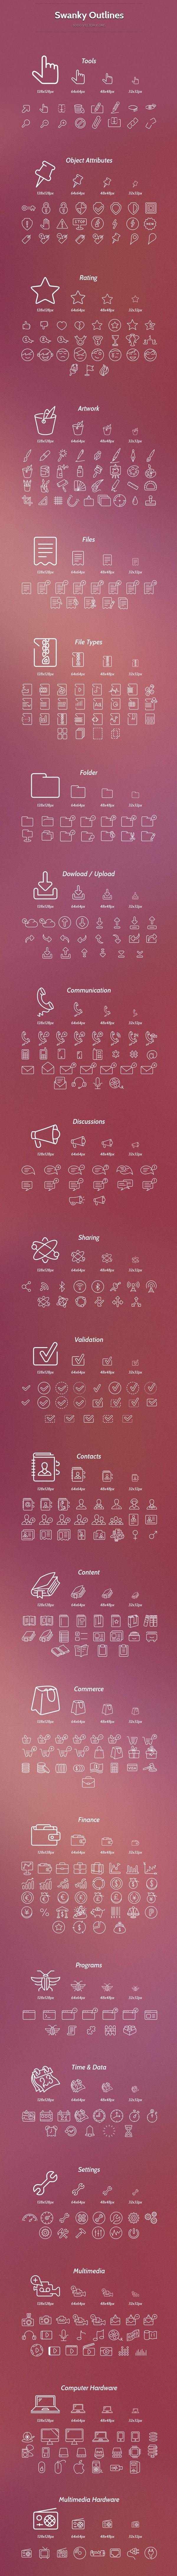 Swanky Outlines - 1000 ICON SET http://pixelkit.com/amember/aff/go?r=27299i=25 #icon #design